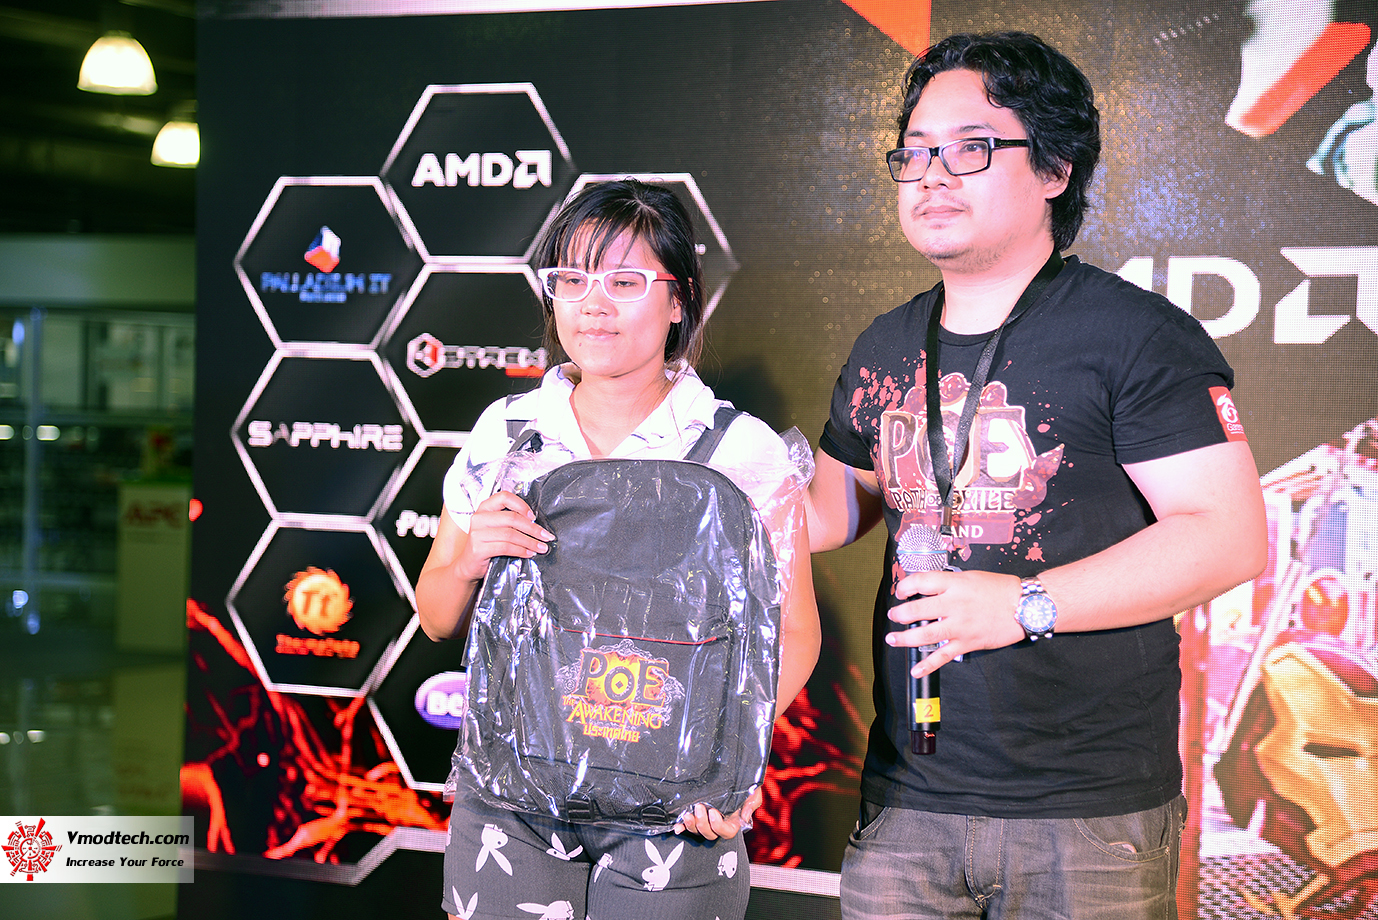 dsc 7142 AMD OMG! Party 2015 (AMD Overclock Modding Gaming Party 2015)